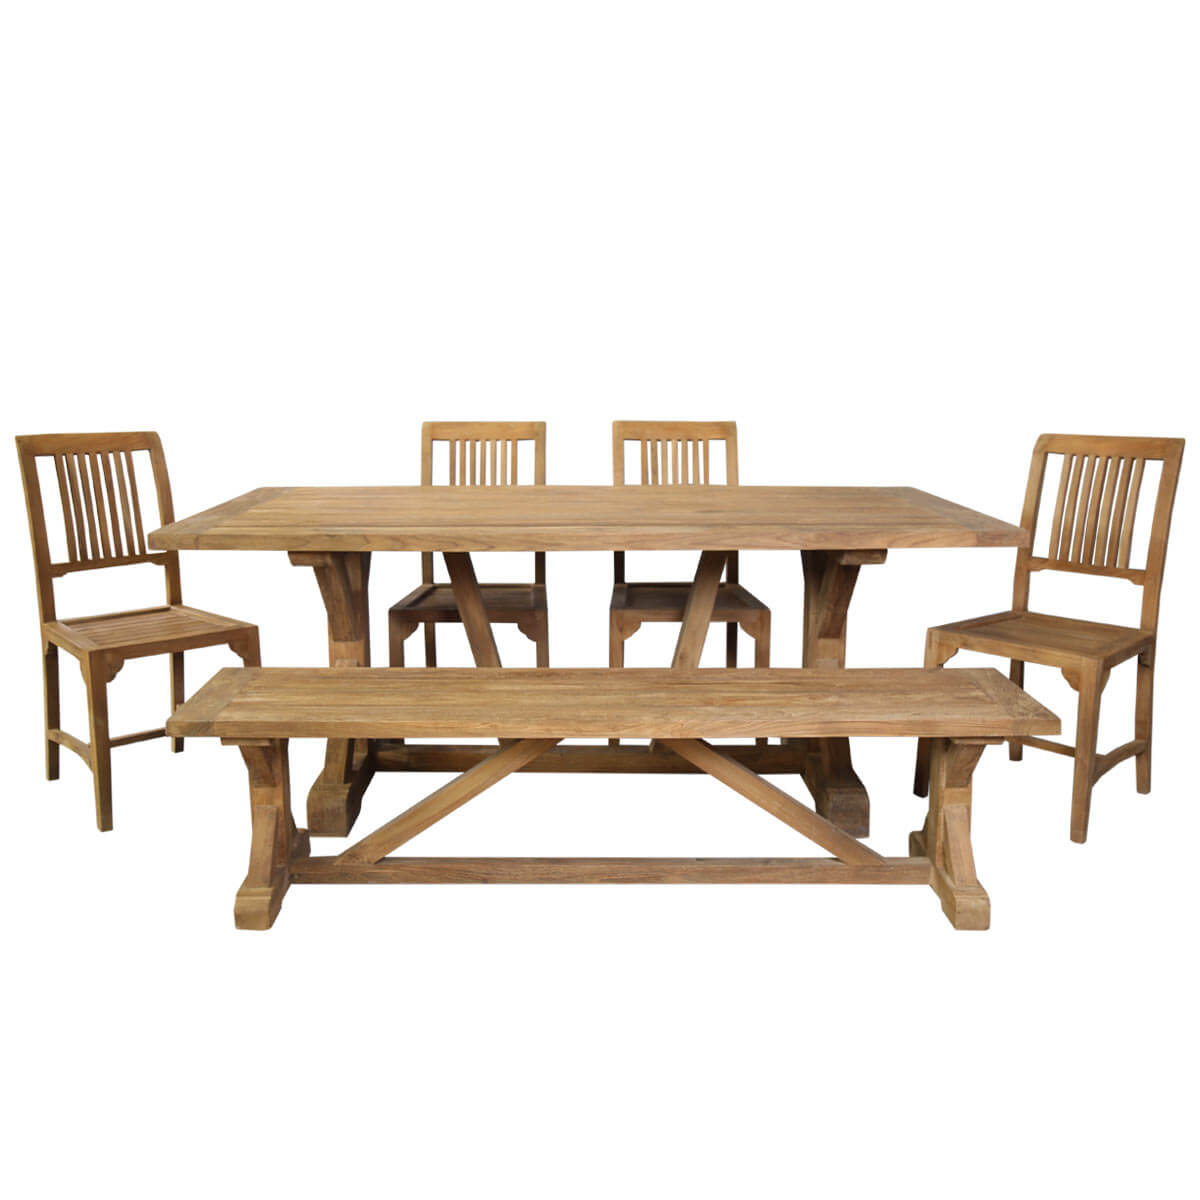 Fulton Teak Wood Trestle Base Dining Table With 4 Chairs